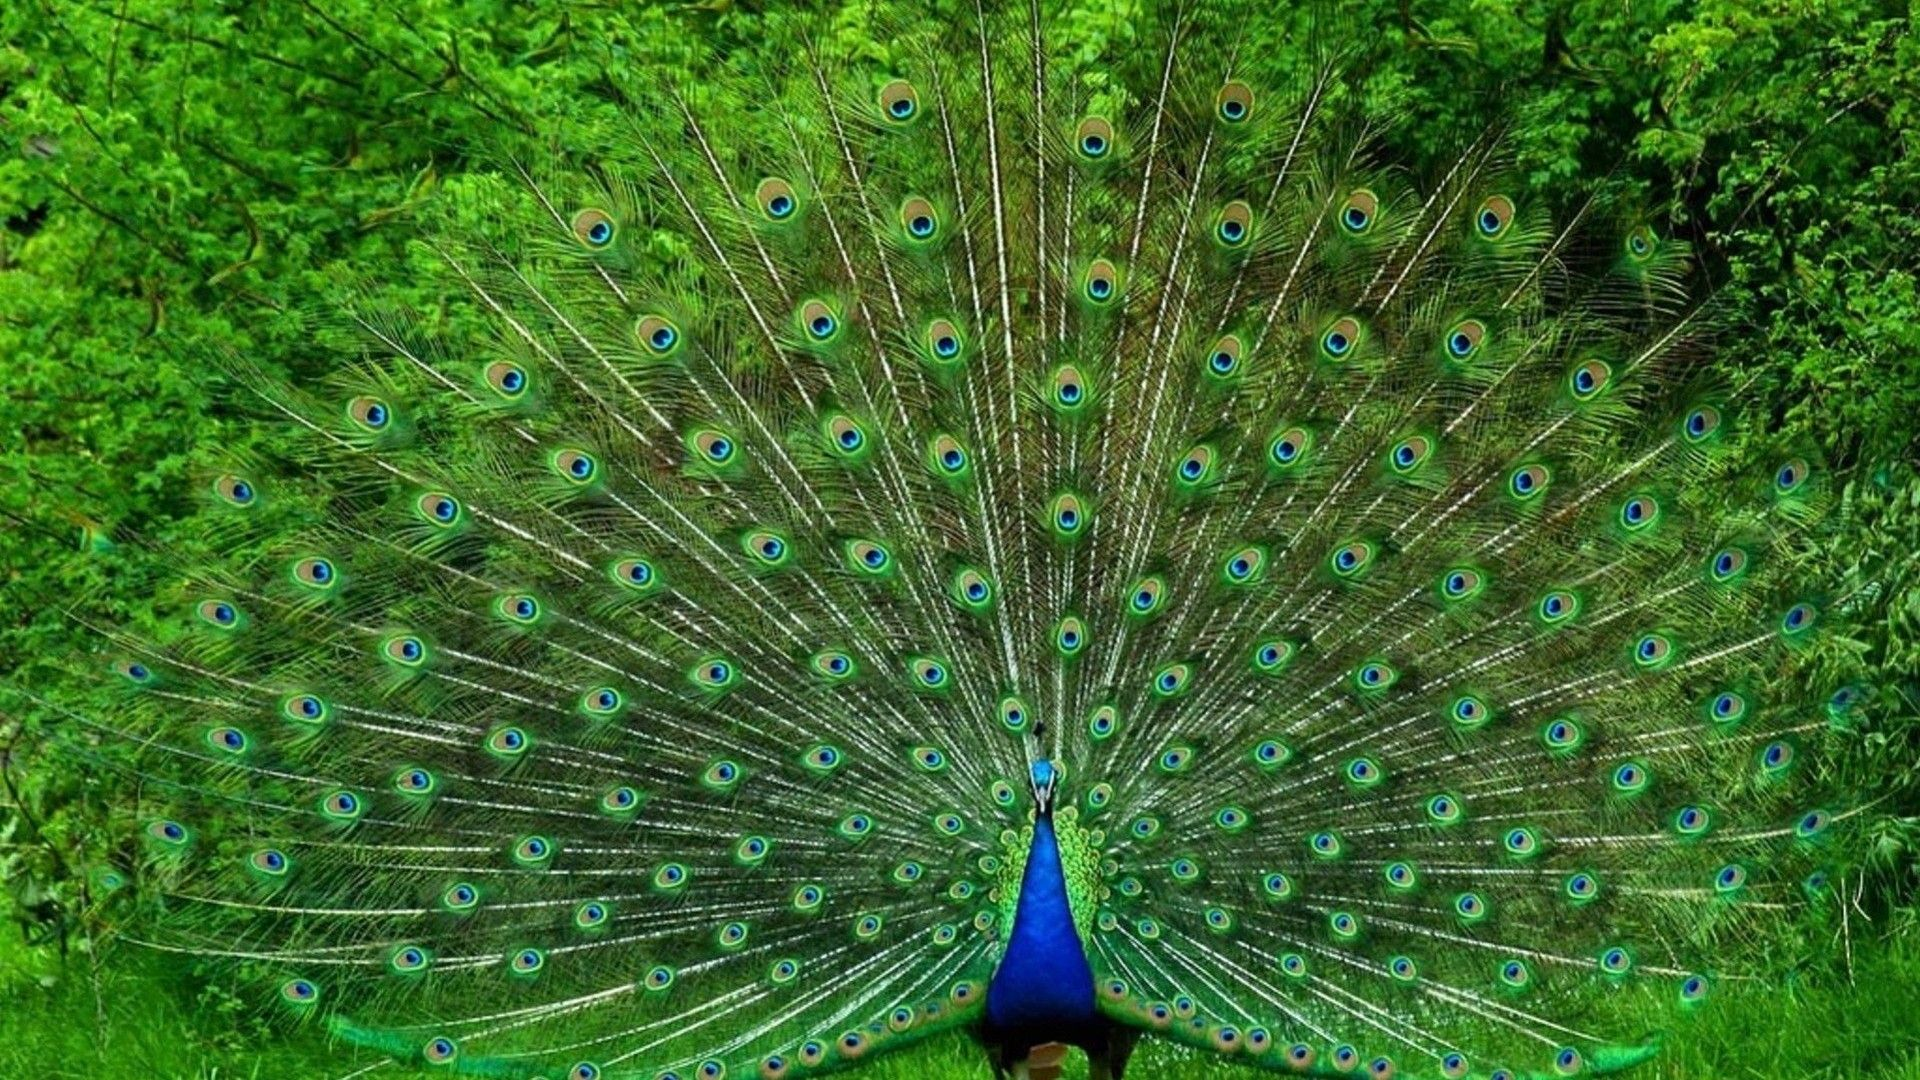 Peacock Wallpaper Peacock Images Peacock Pictures